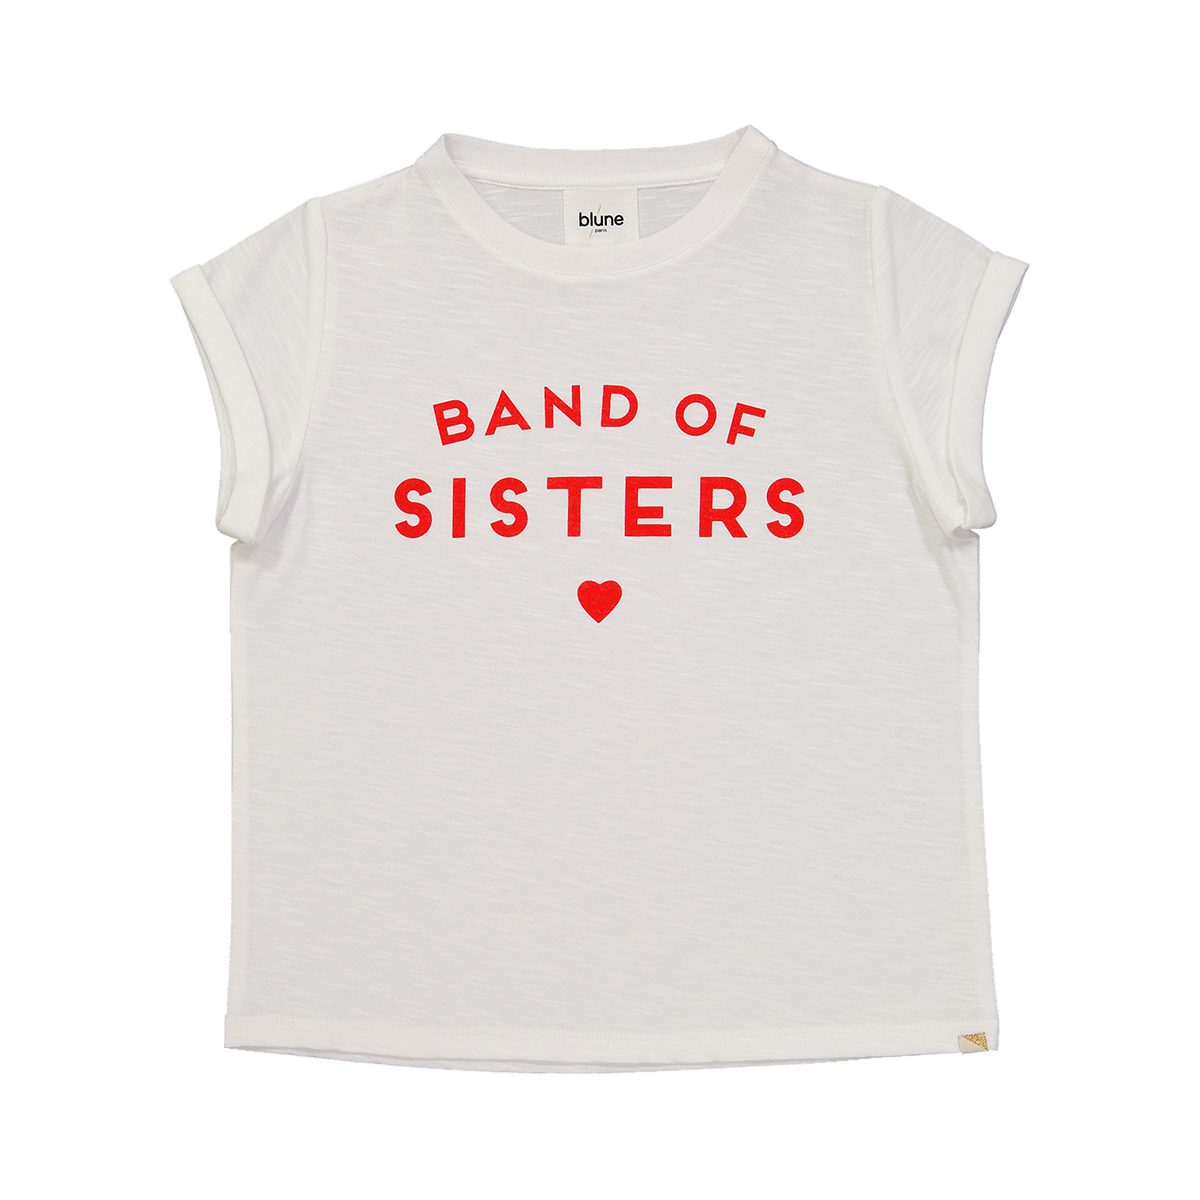 Blune Band of Sisters Short Sleeve T-Shirt in White & Red